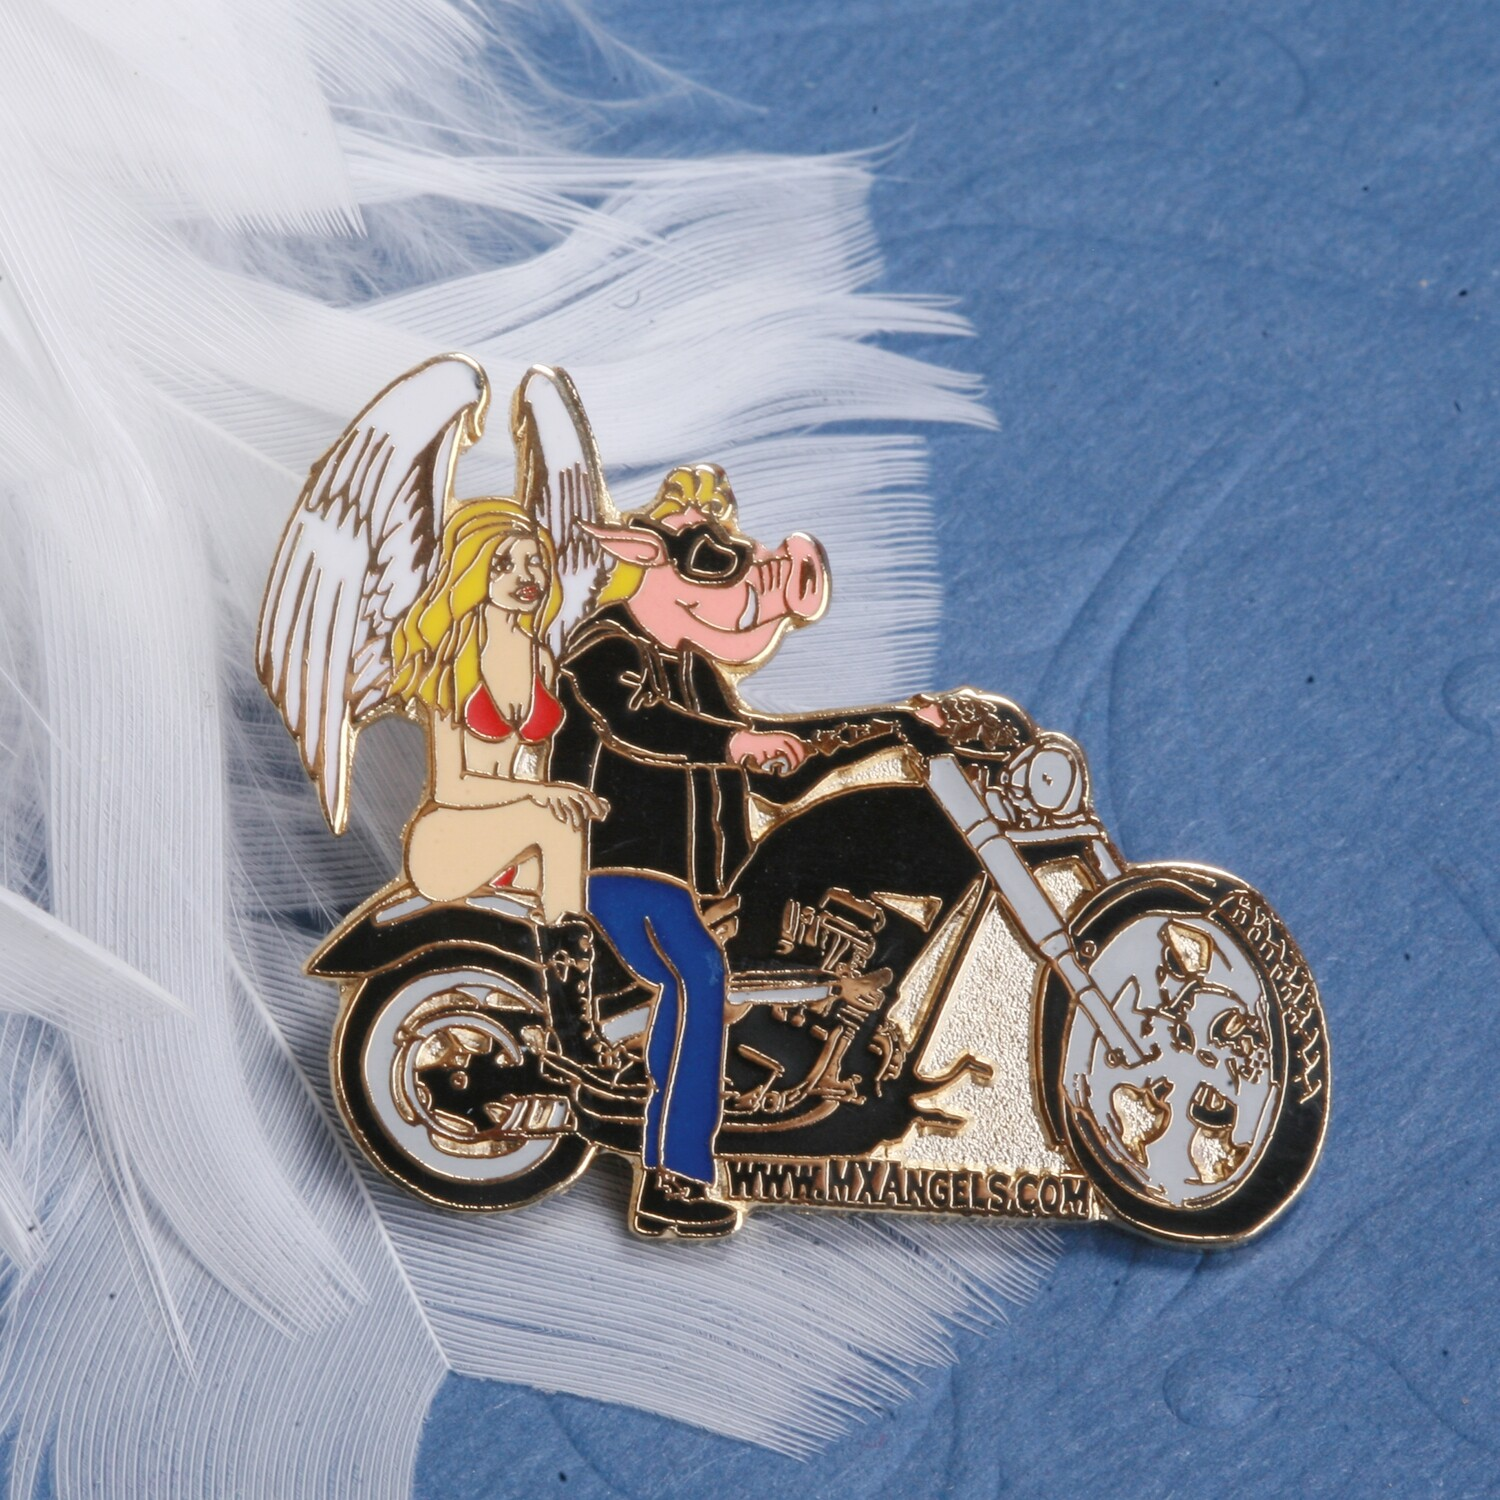 Grace The Guardian Angel Couple  Riding with the Chopper / Harley  Motorcycle Hog Pin